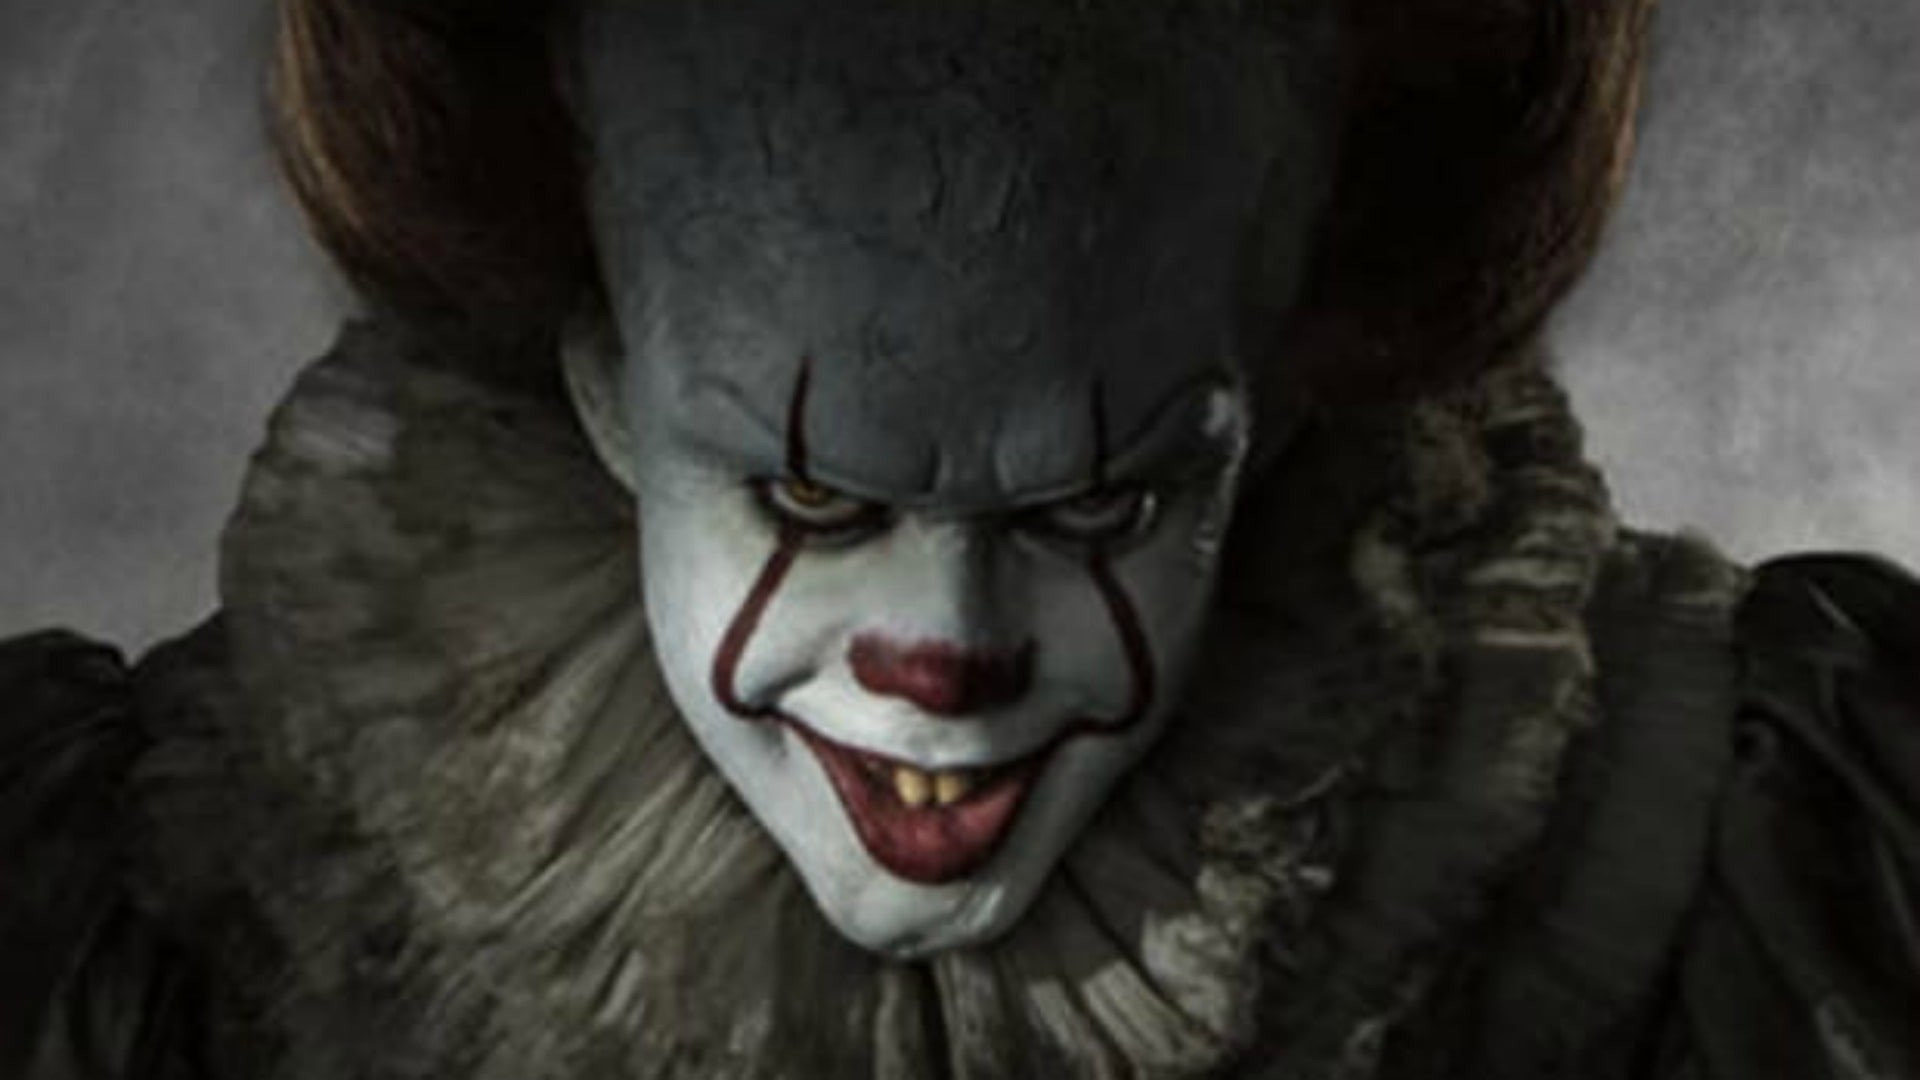 1920x1080 Pennywise The Clown in It 4K Wallpapers   HD Wallpapers   ID #22375